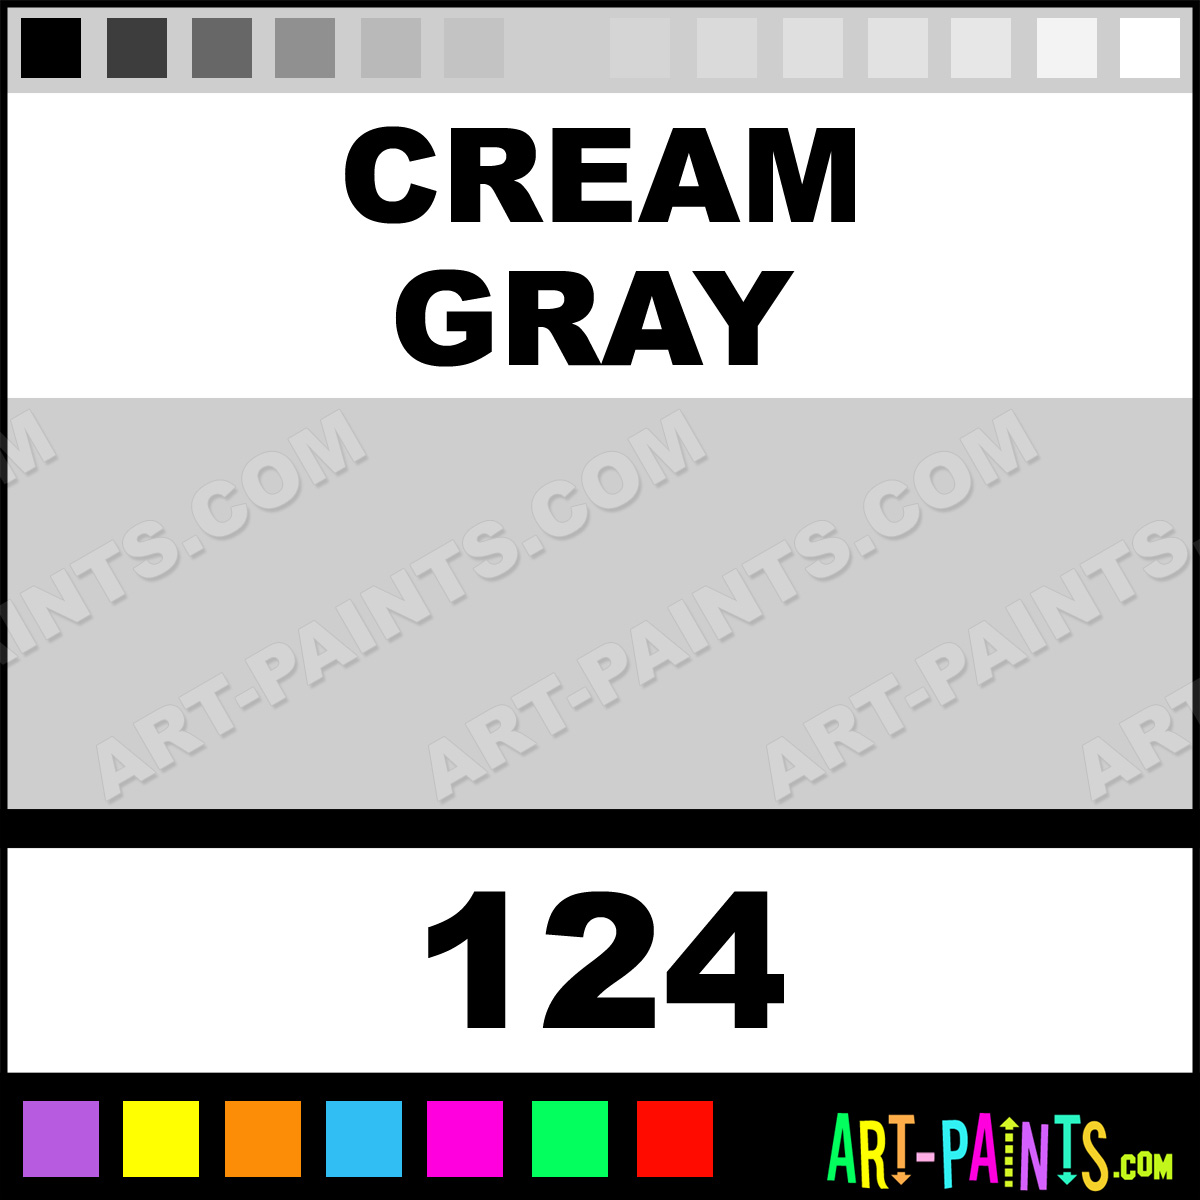 Cream gray paint body face paints 124 cream gray paint for Creamy grey paint color